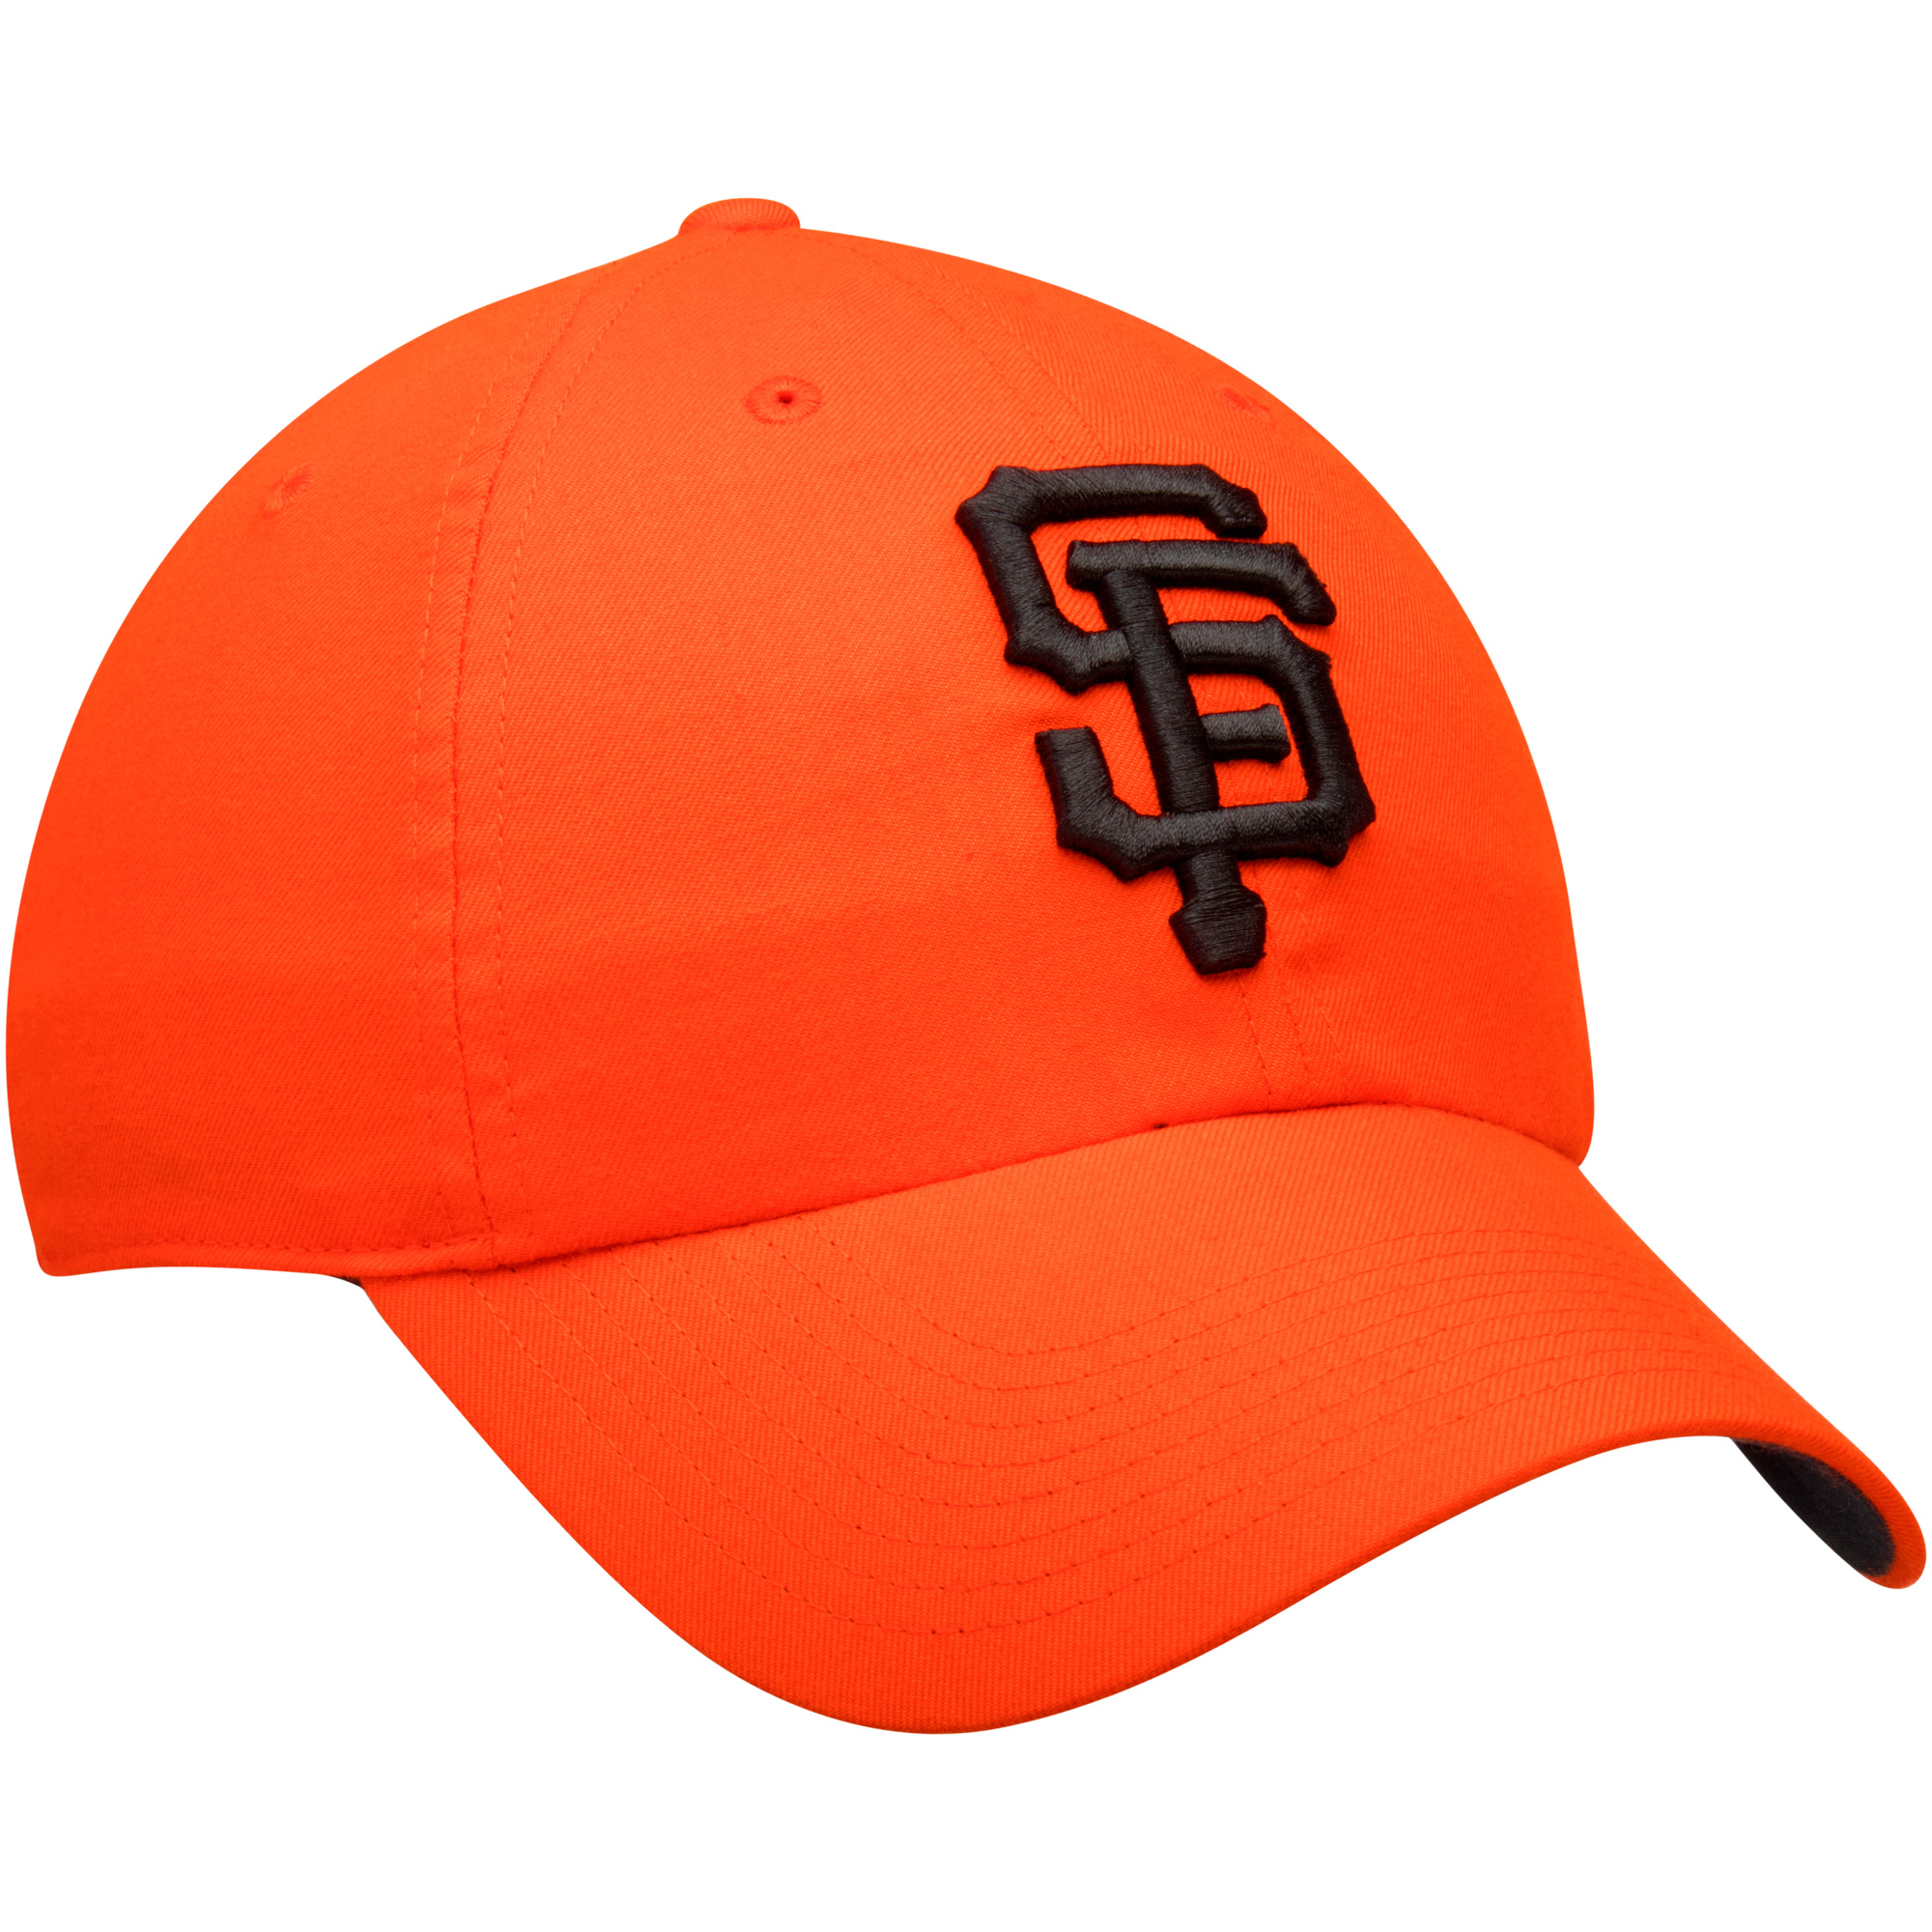 differently 3f898 67024 San Francisco Giants Nike Heritage 86 Stadium Performance Adjustable Hat -  Orange - OSFA - Walmart.com